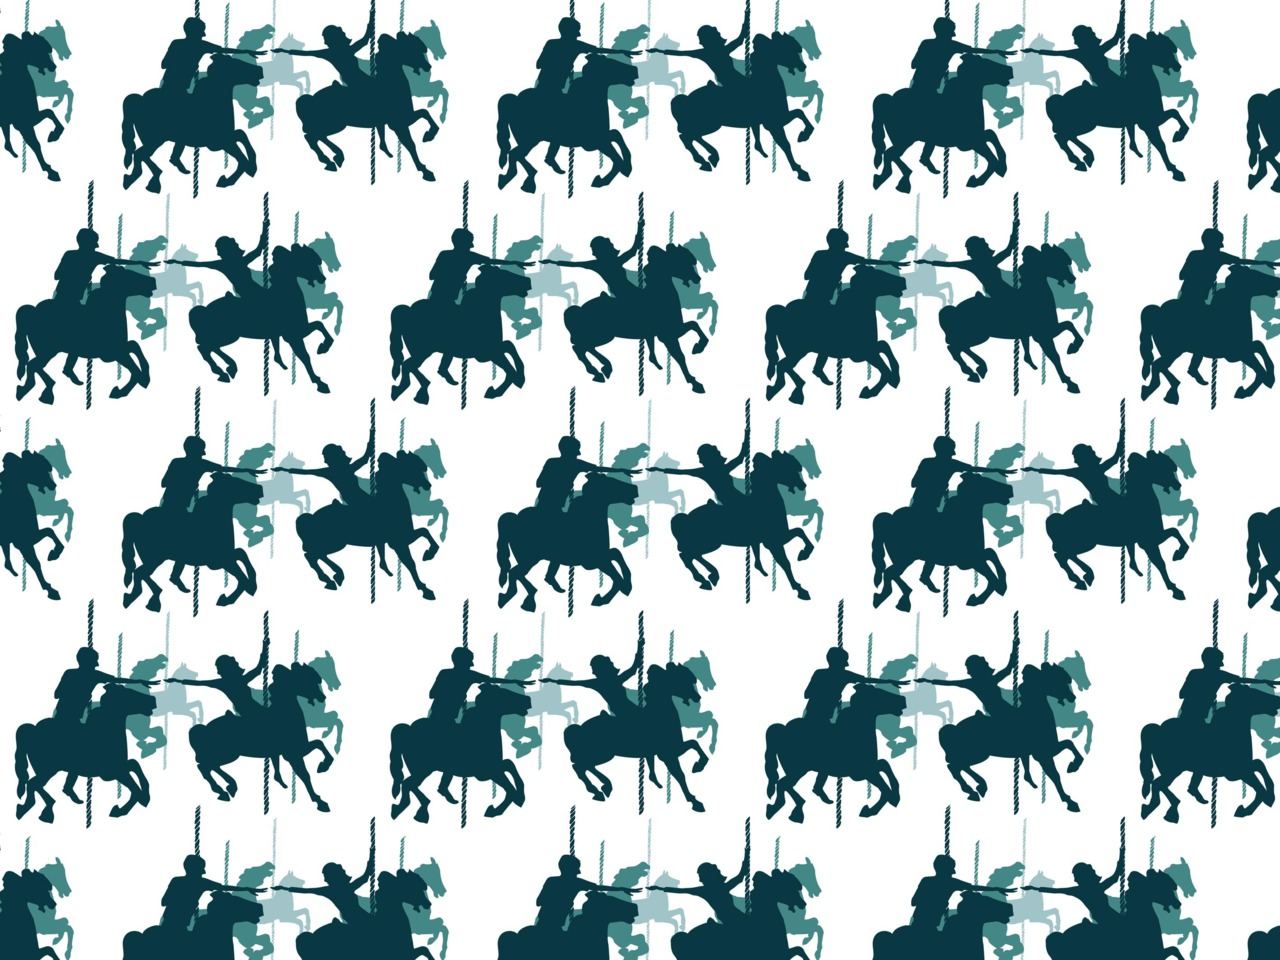 I've been dabbling in creating patterns. This one is based on my 'wild horses couldn't tear us apart' screen print design.